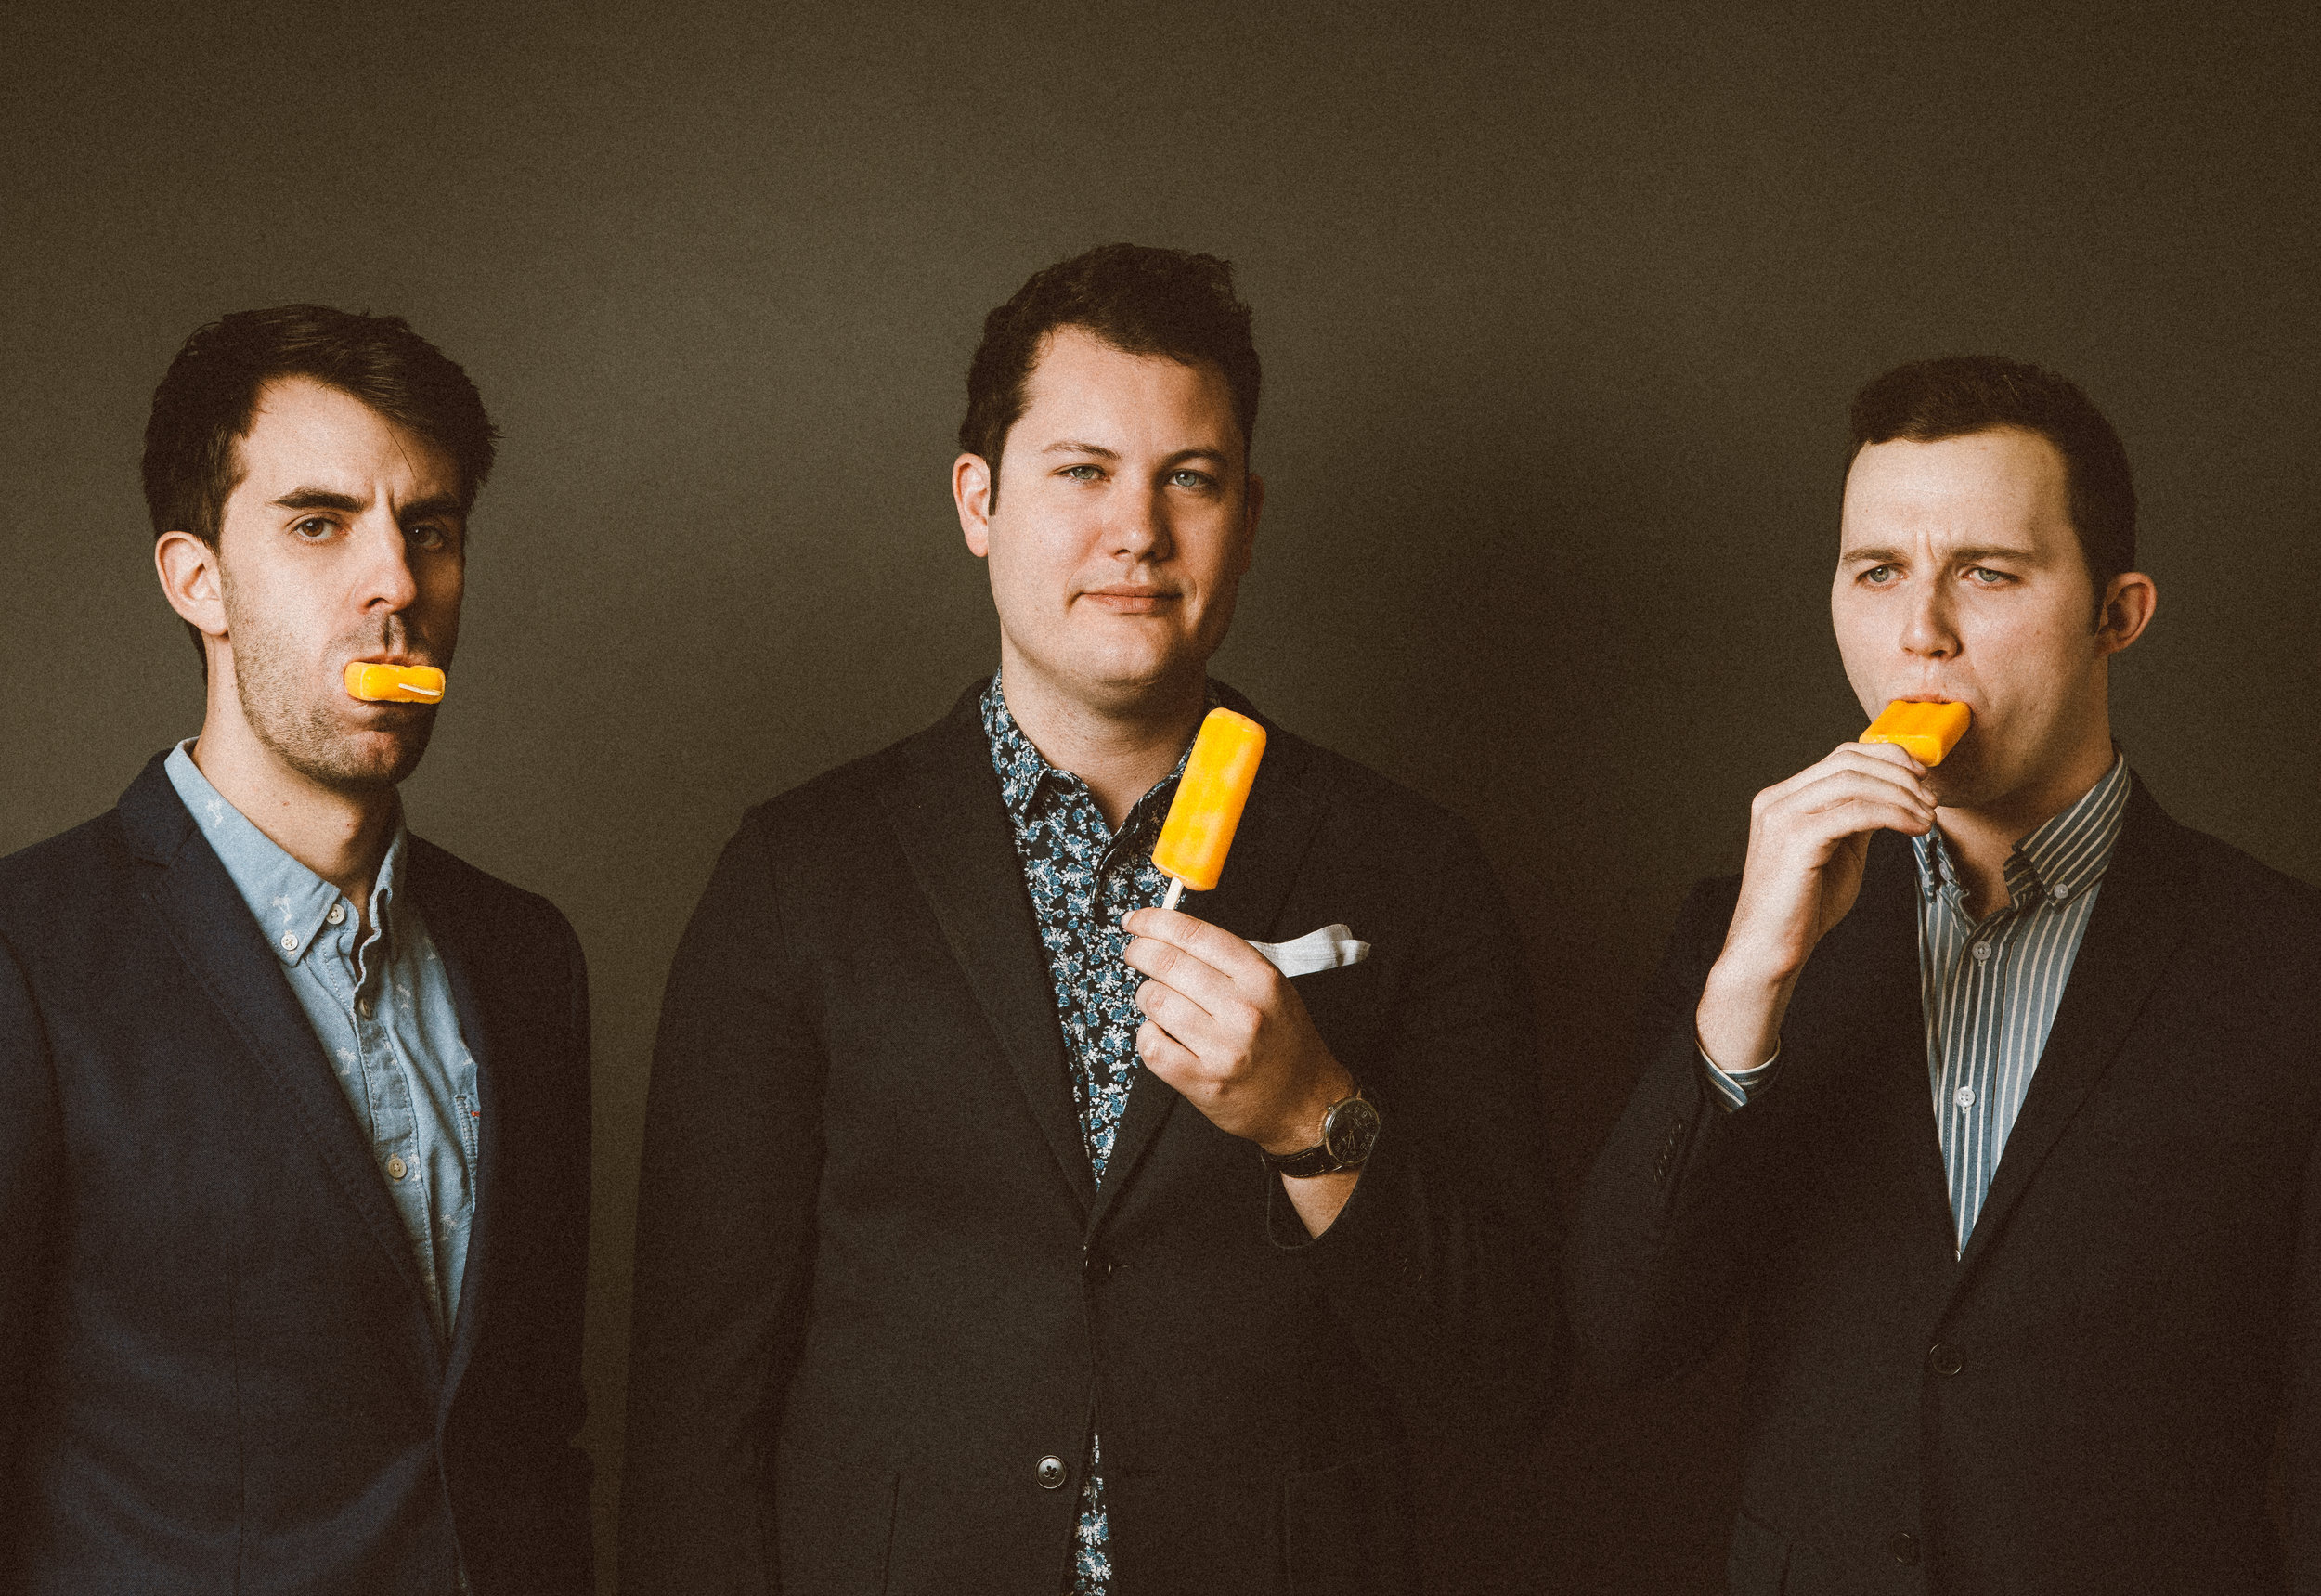 Hi, we're Extremely Decent - We're a group of 5 dudes who've been cracking jokes and hitting record ever since we first snuck into our parent's closet and stole their Hi-8 camcorders. We specialize in putting together our various talents as performers, artists, and occasionally comedic sensibilities to bring you the best content possible.From music-videos to mock-advertisements, situational comedy to satire, we're committed to living up to the promise of our name – quality. Check out our videos and various social media outlets as we charge through a contractually obligated 18 months worth of humor, of which our mother's have not stopped begging us to use cleaner language.